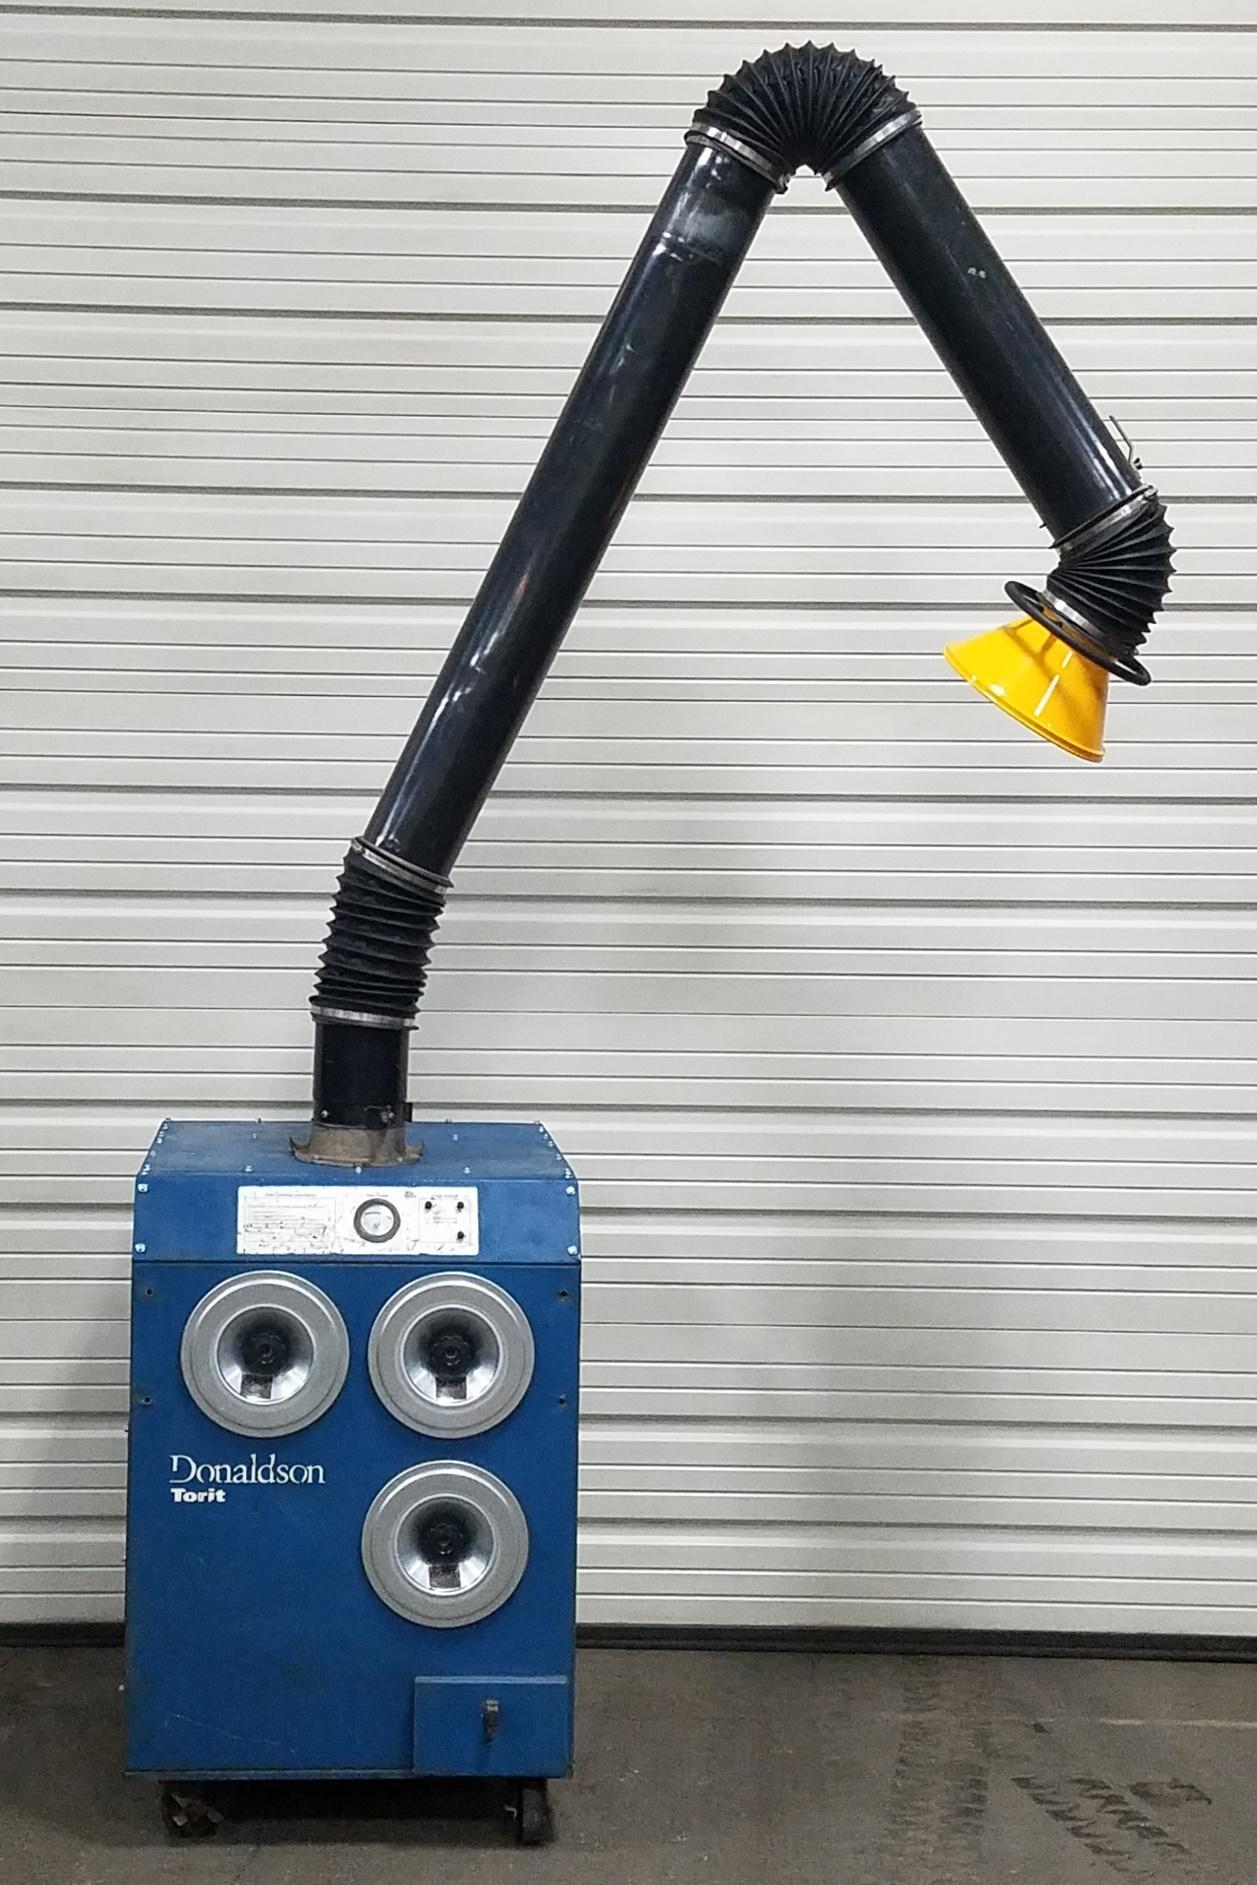 750 cfm Donaldson Torit Easy-Trunk Portable Dust Collector